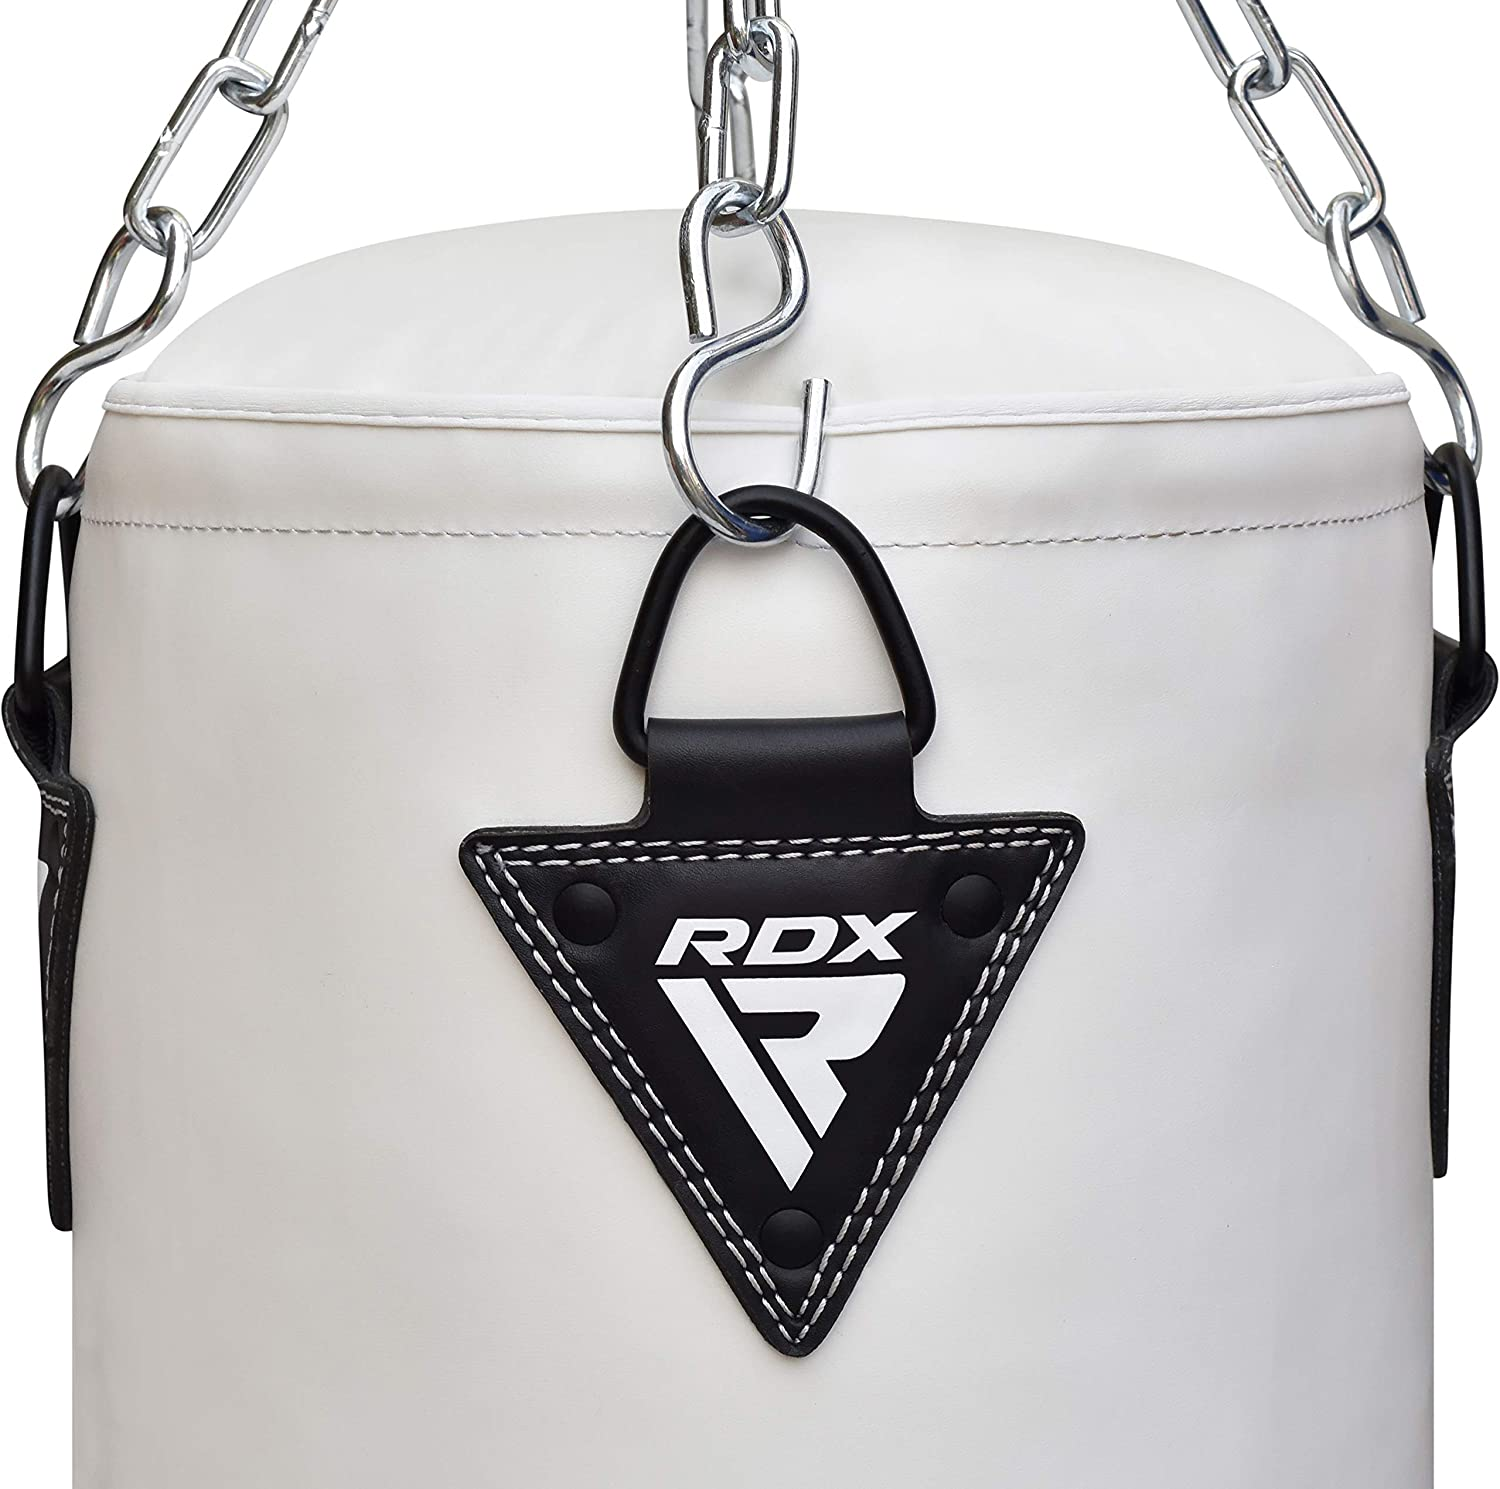 RDX Punching Bag UNFILLED Set Muay Thai Training Gloves with Punch Mitts Hanging Chain Ceiling Hook, Ideal for MMA, Kick Boxing, Martial Arts, 4PC Available in 4FT 5FT : Sports & Outdoors